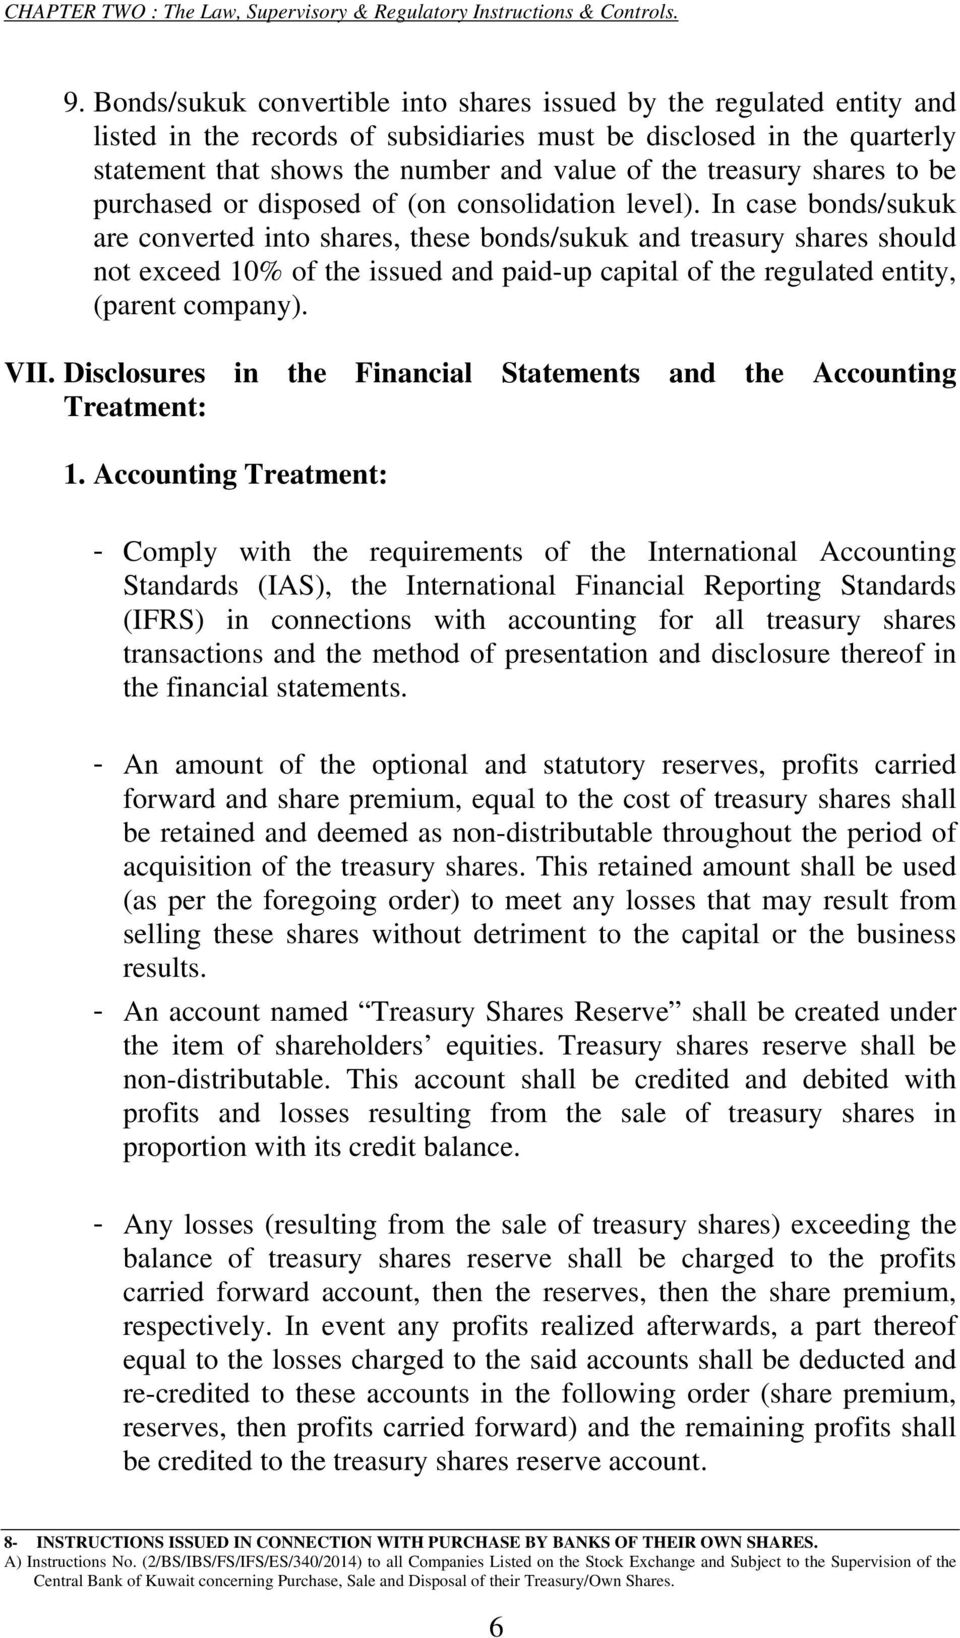 In case bonds/sukuk are converted into shares, these bonds/sukuk and treasury shares should not exceed 10% of the issued and paid-up capital of the regulated entity, (parent company). VII.